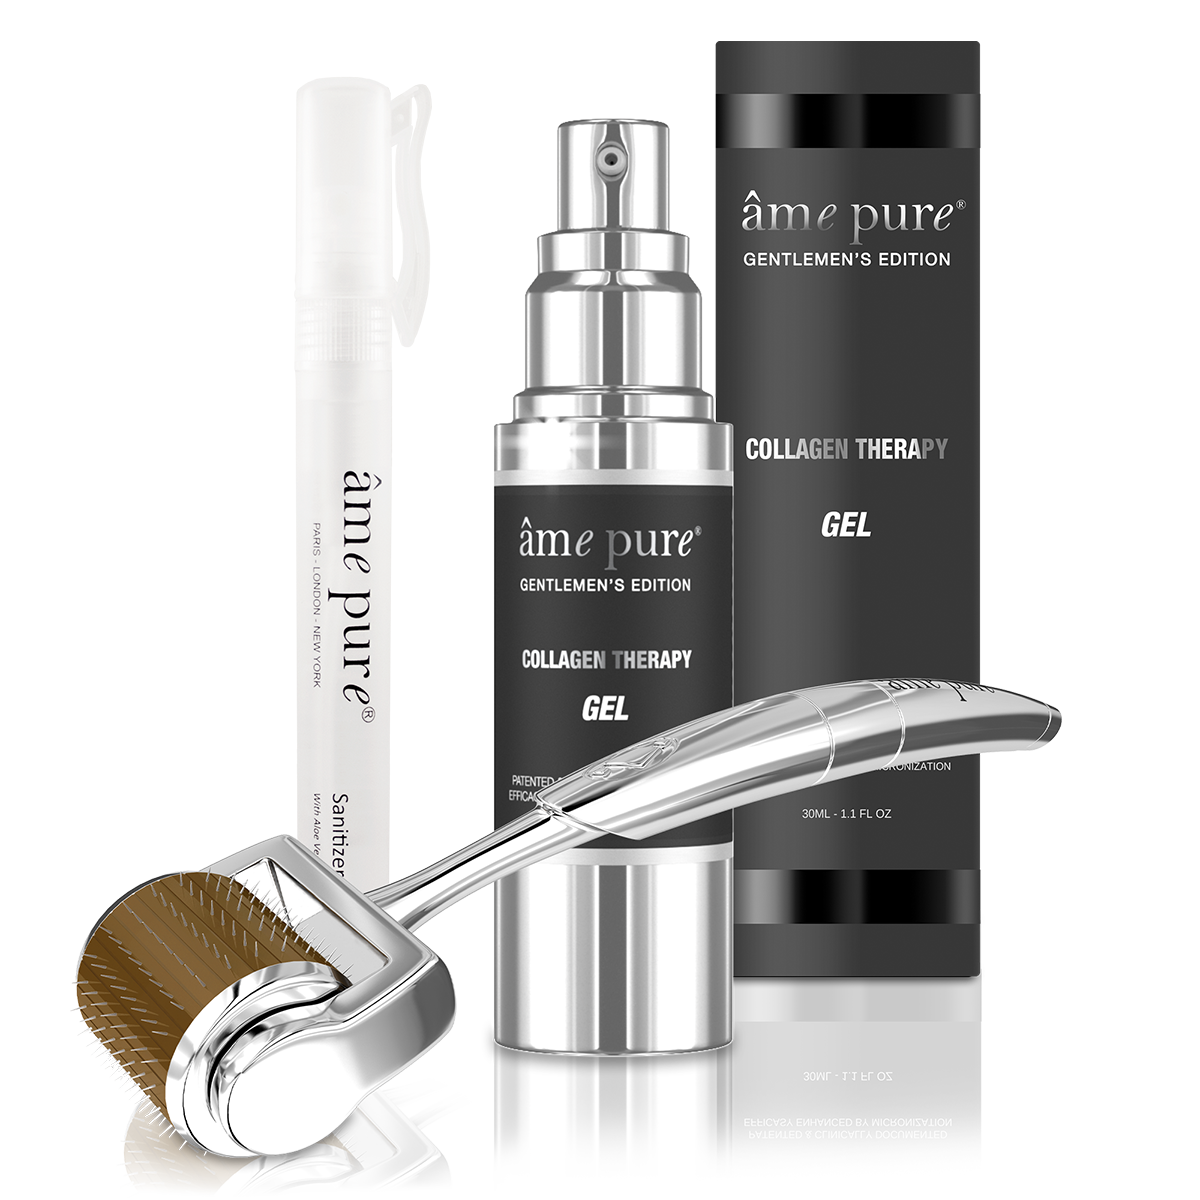 ame pure, face roller, dermaroller, skin product for man